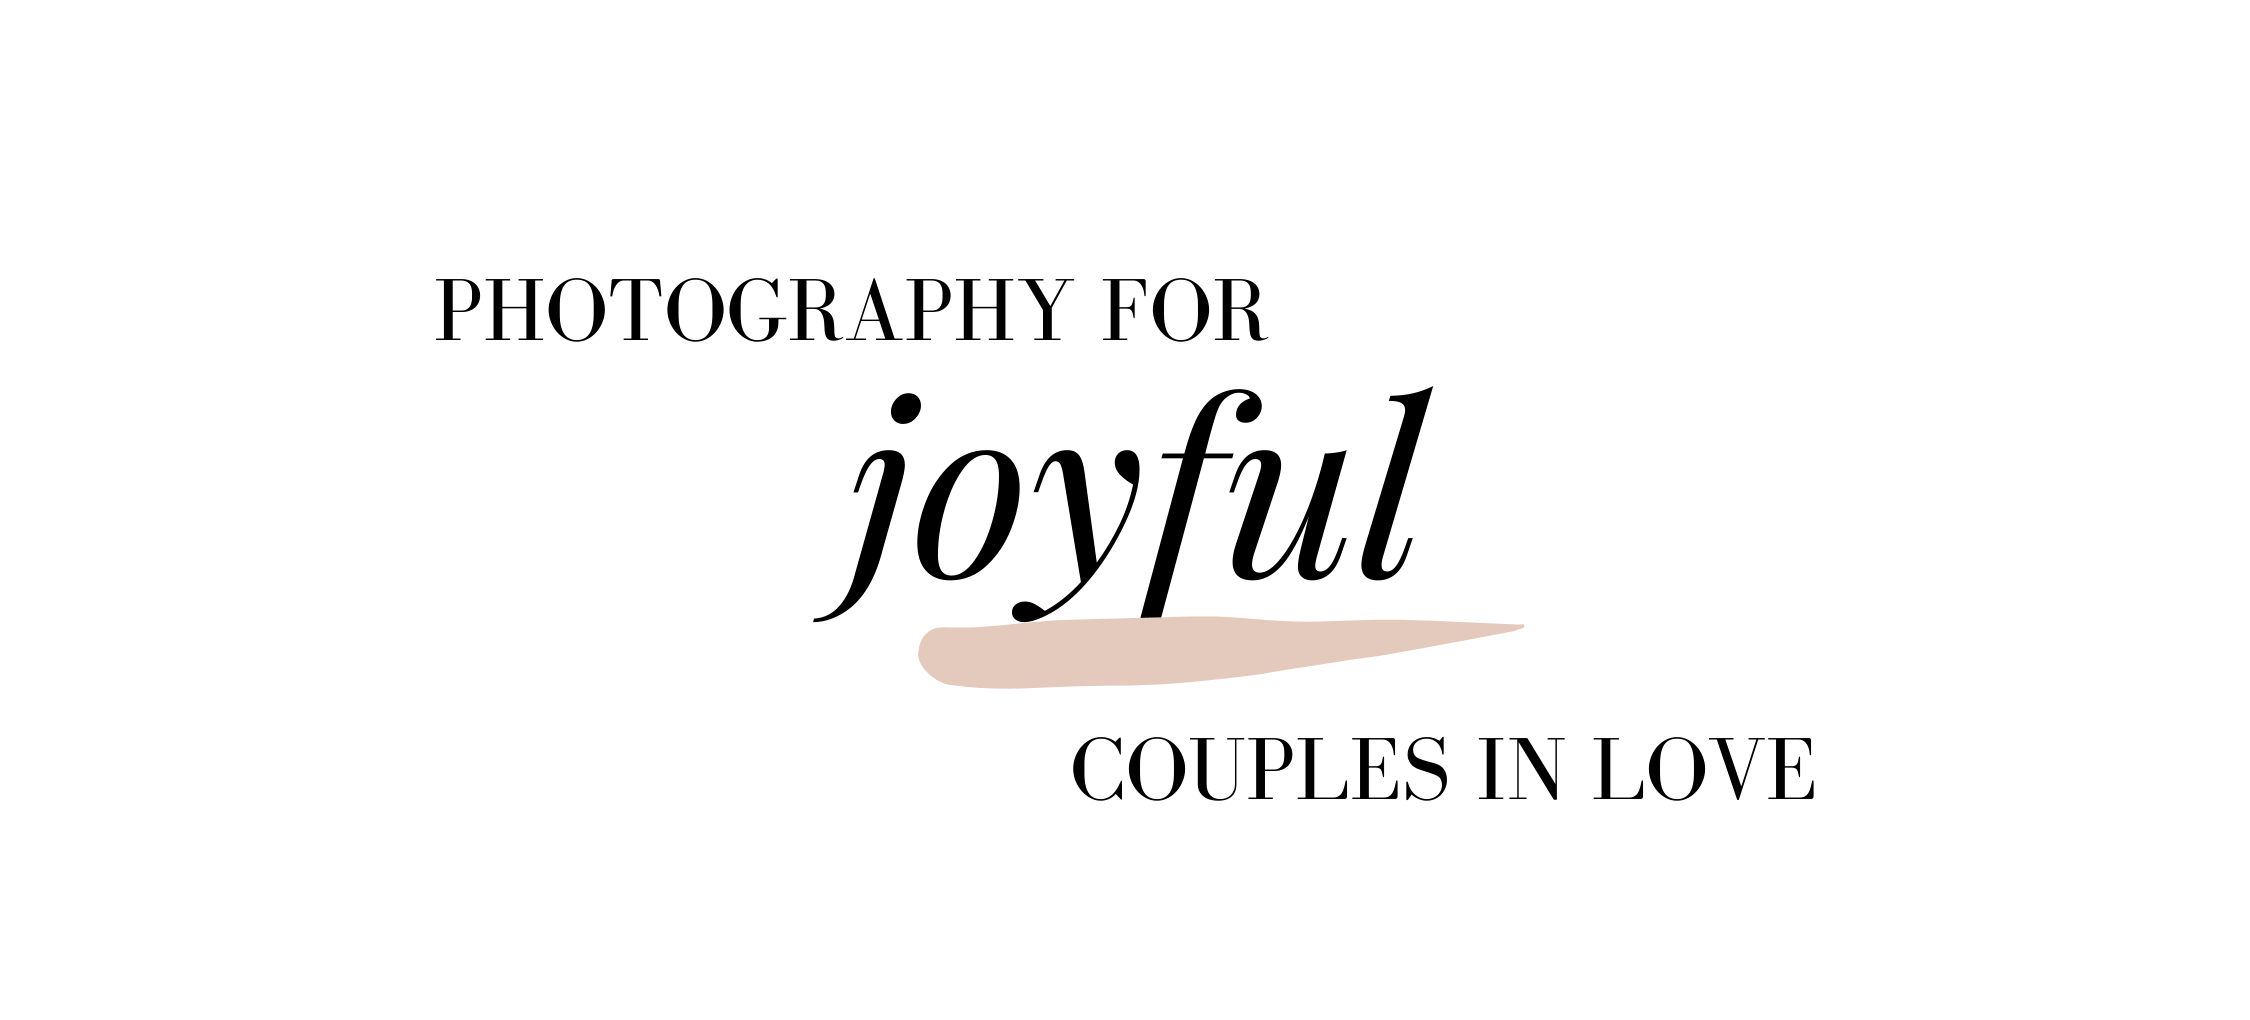 chinling ideal couples2